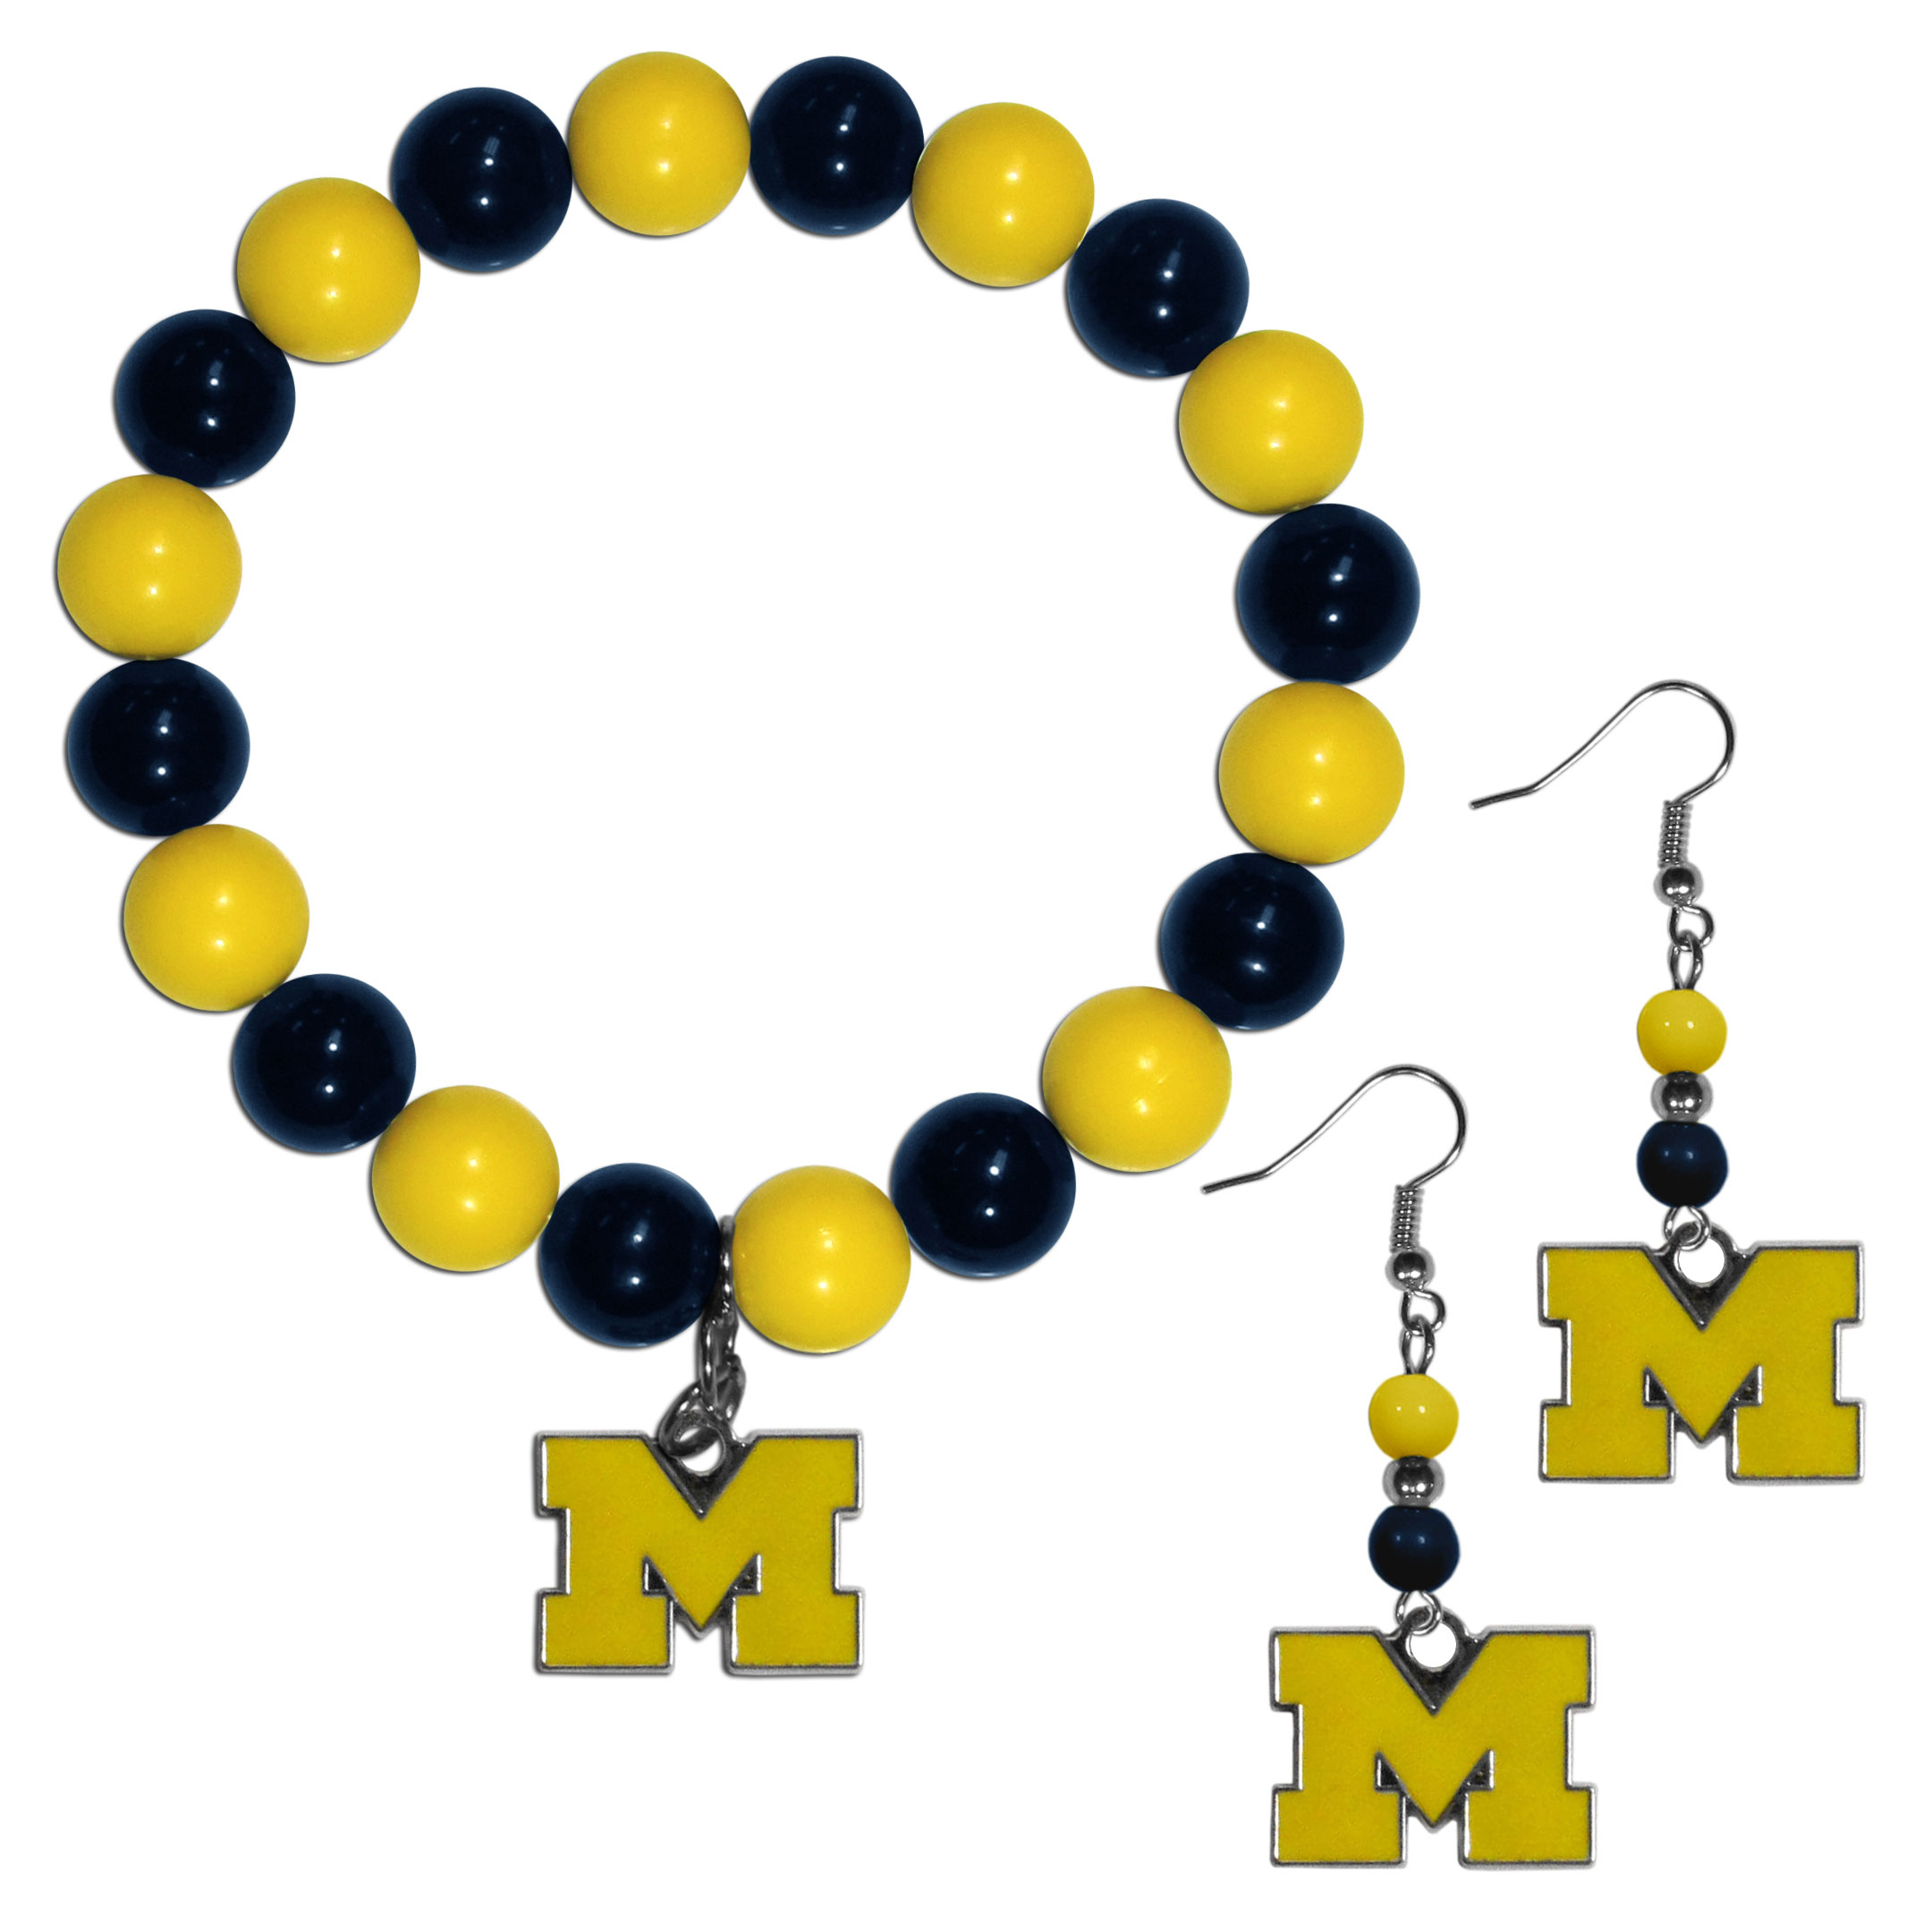 Michigan Wolverines Fan Bead Earrings and Bracelet Set - This fun and colorful Michigan Wolverines fan bead jewelry set is fun and casual with eye-catching beads in bright team colors. The fashionable dangle earrings feature a team colored beads that drop down to a carved and enameled charm. The stretch bracelet has larger matching beads that make a striking statement and have a matching team charm. These sassy yet sporty jewelry pieces make a perfect gift for any female fan. Spice up your game-day outfit with these fun colorful earrings and bracelet that are also cute enough for any day.